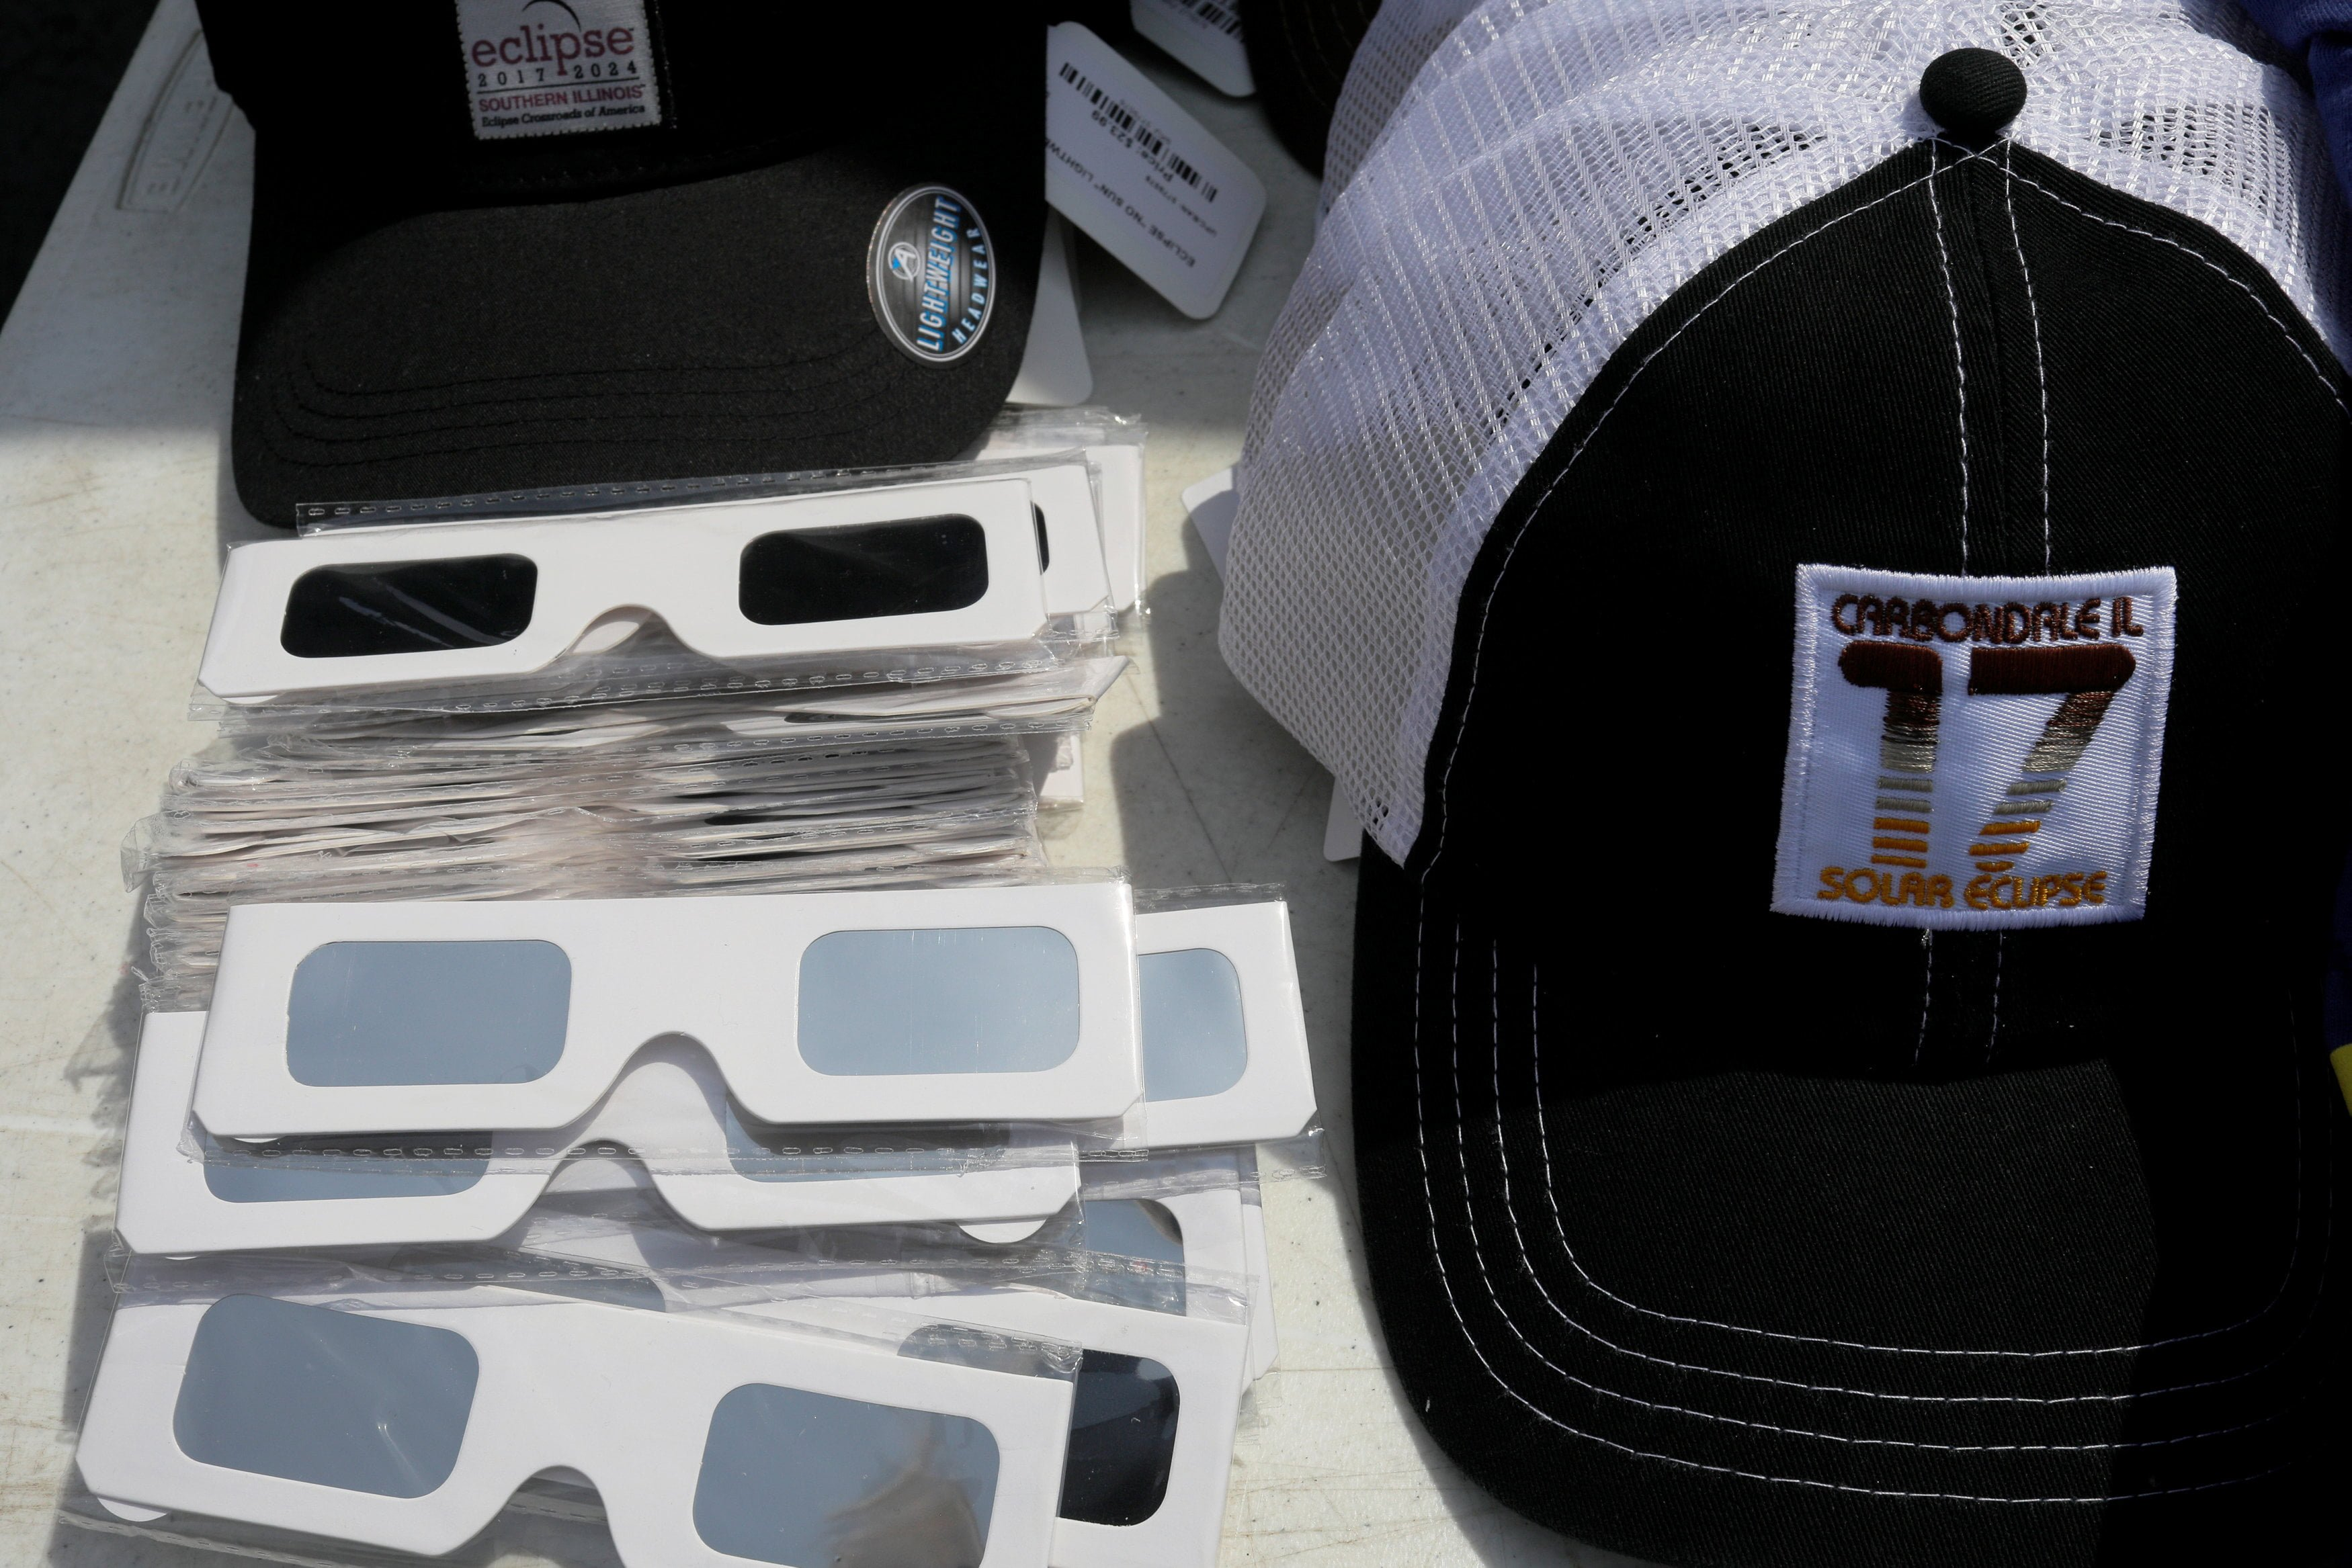 Solar viewing glasses and baseball caps are for sale in Carbondale, Illinois, U.S., August 20, 2017, one day before the total solar eclipse.